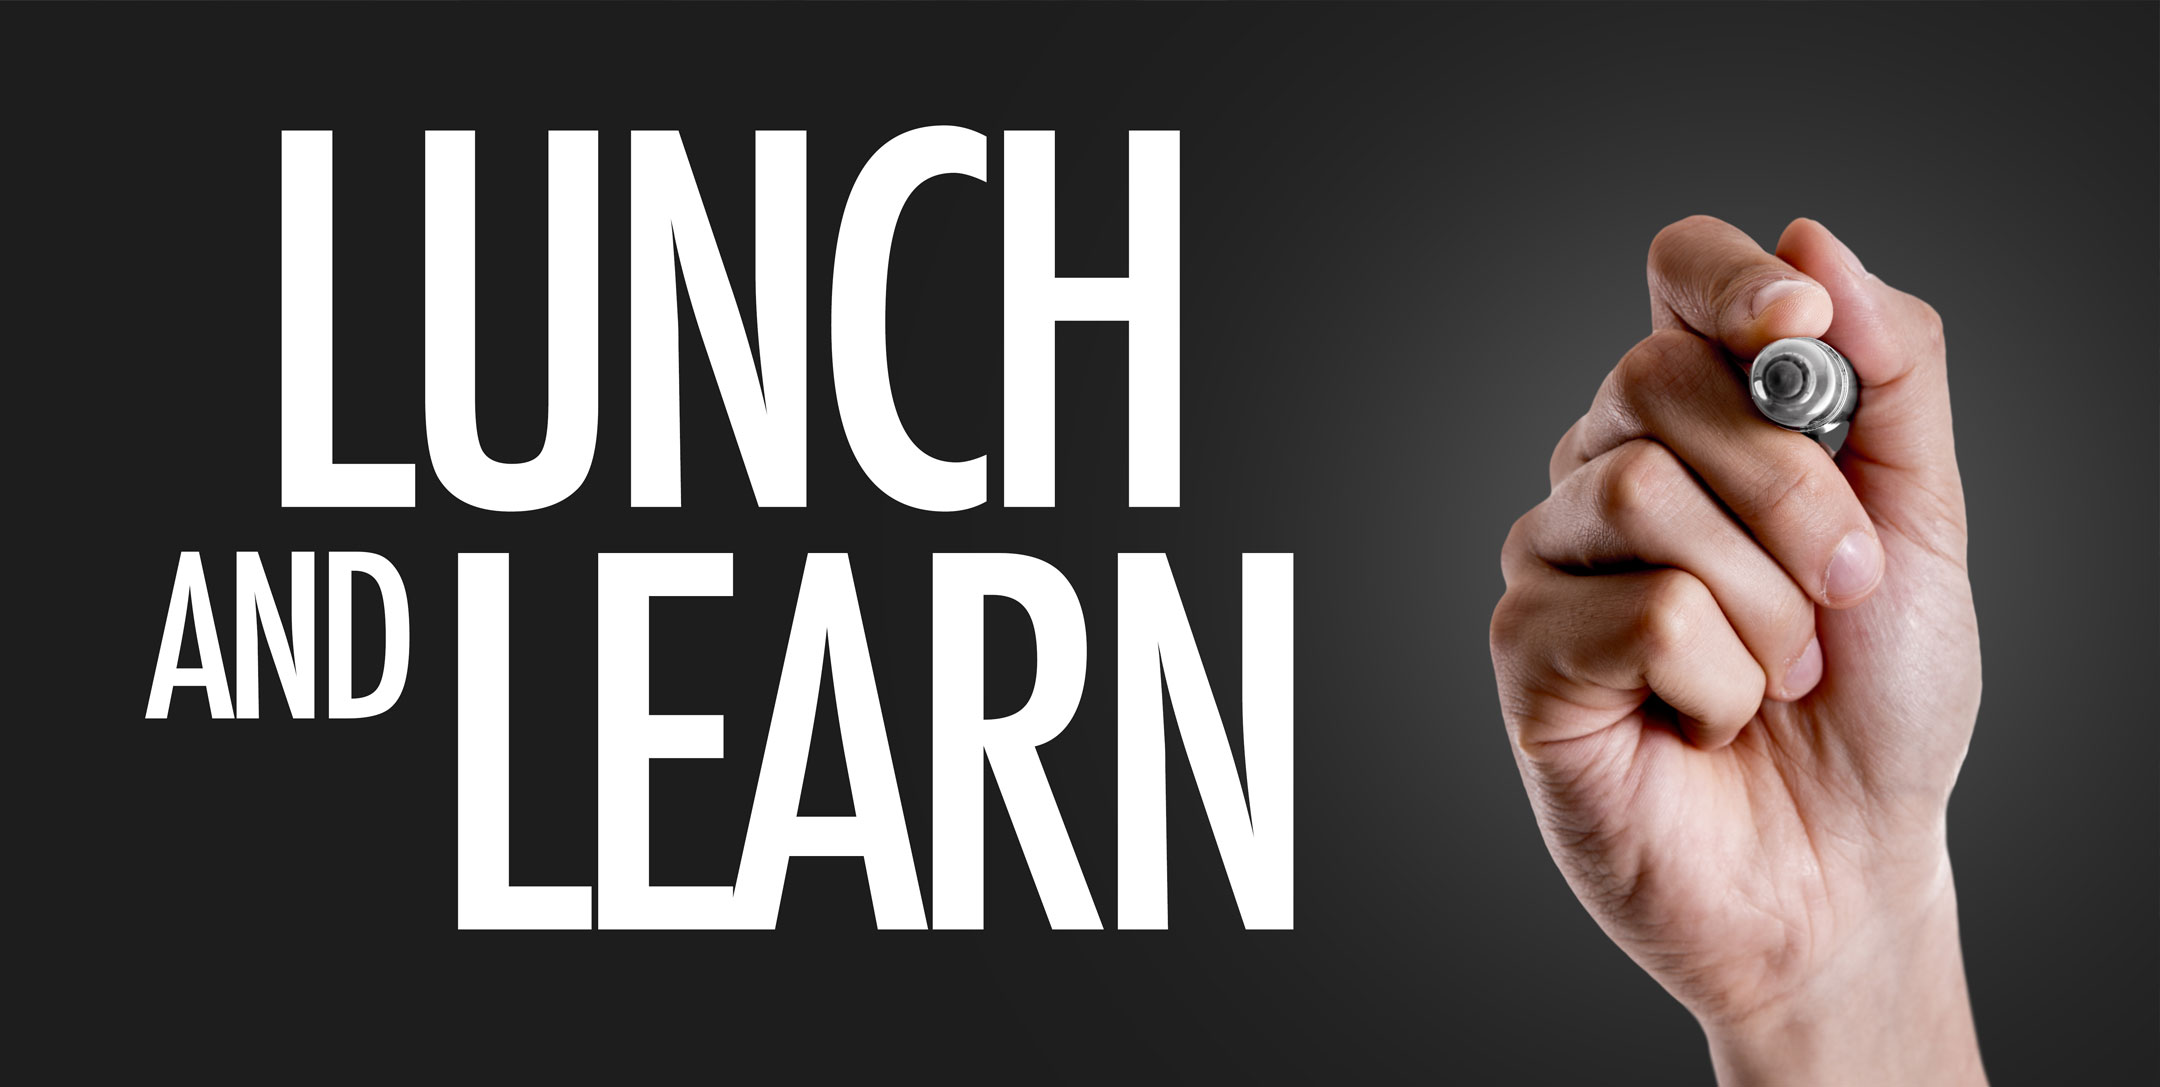 Lunch & Learn:  Net Outs on Thursday, April 4th